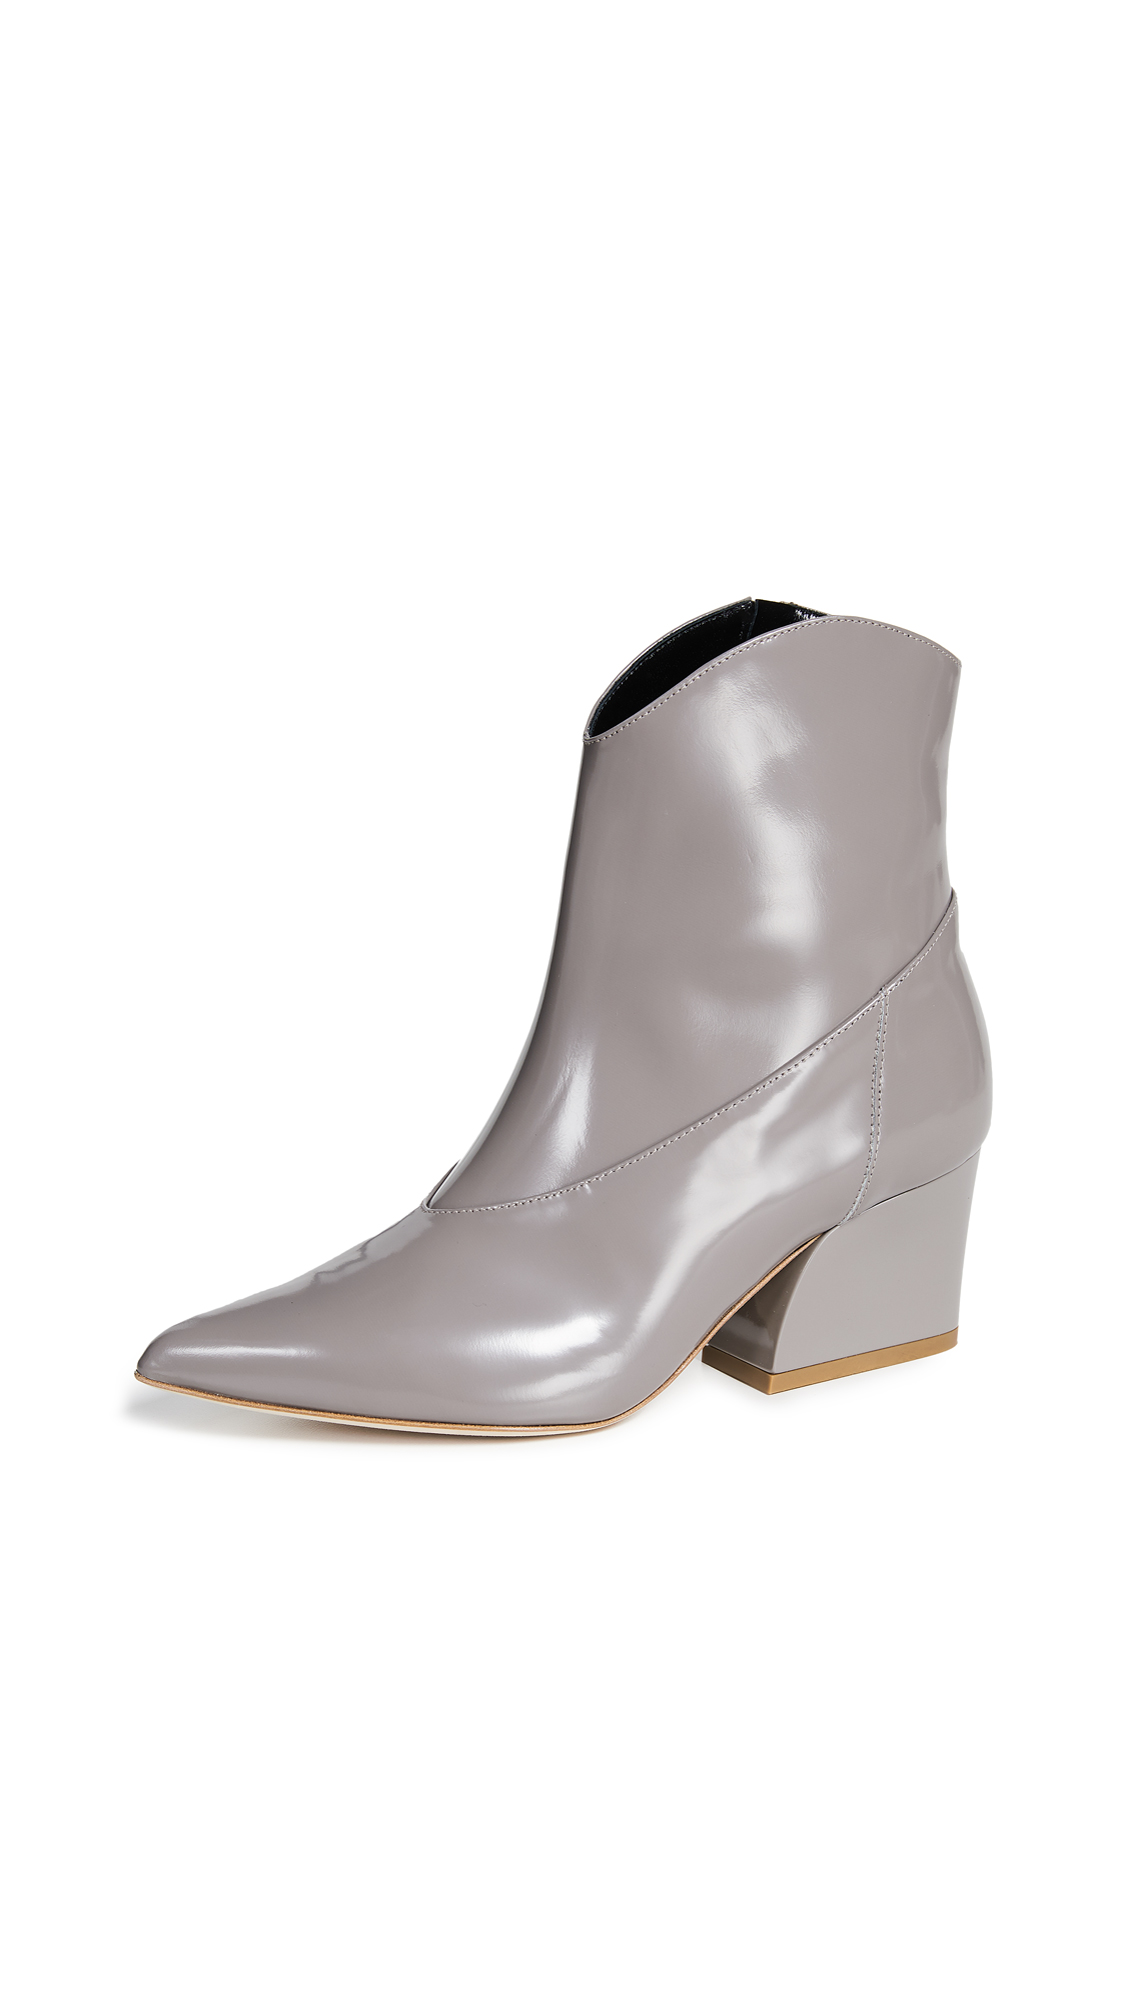 Tibi Dylan Boots - Cement